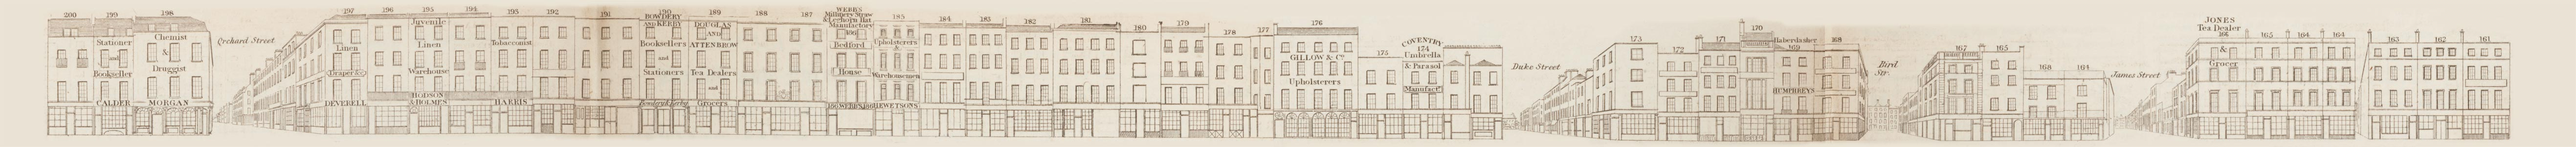 map - Tallis's London street views : No. 48. Oxford Street, division 5 (north)